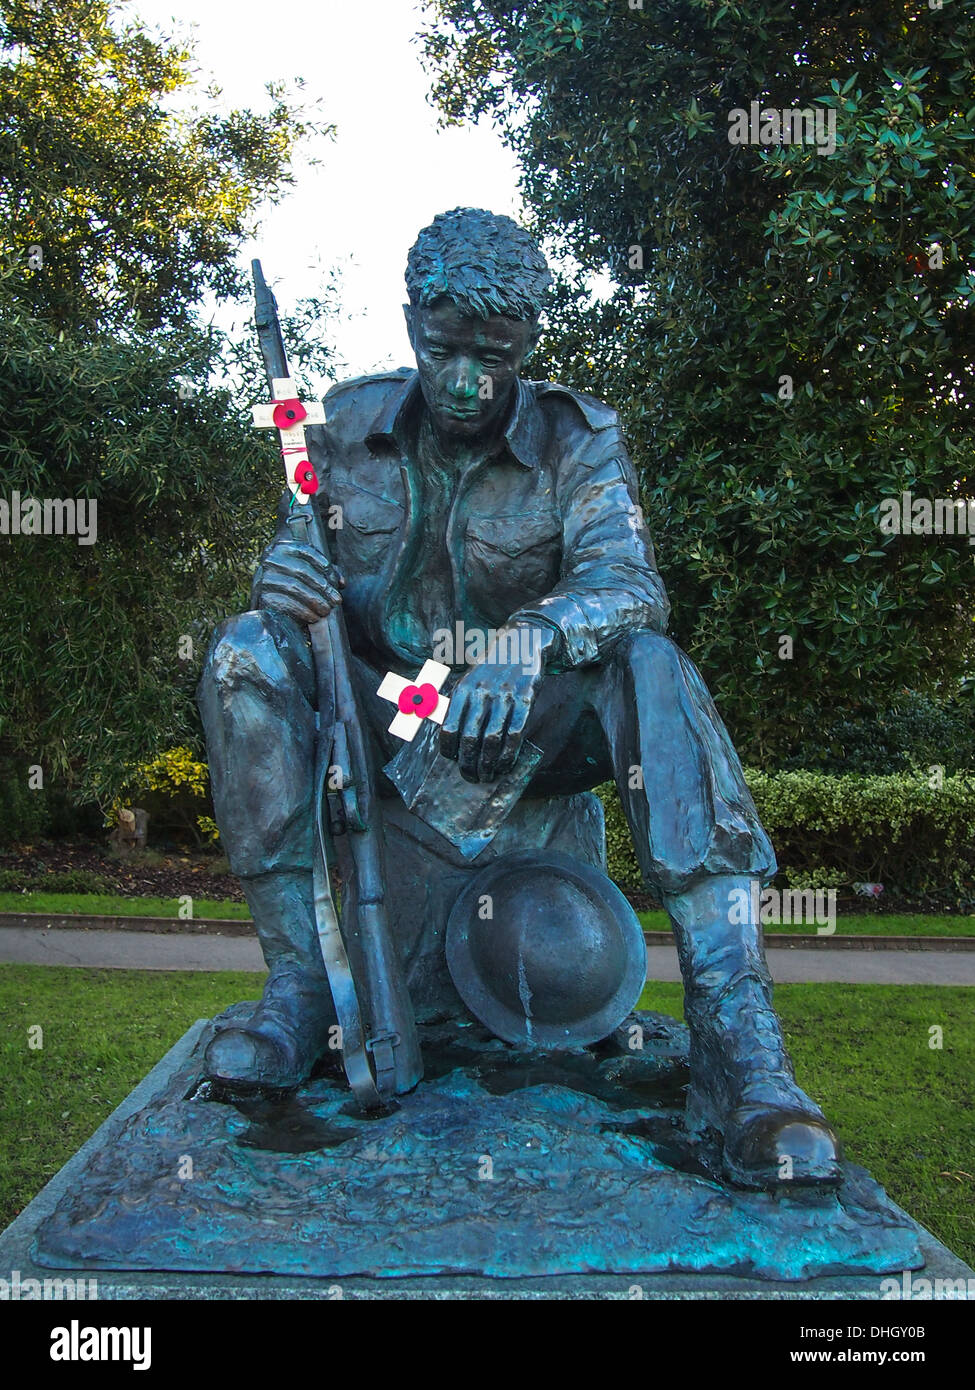 The statue of a 'Soldier of world war two'  with crucifixes and poppies outside the D-day museum in Southsea Portsmouth England - Stock Image